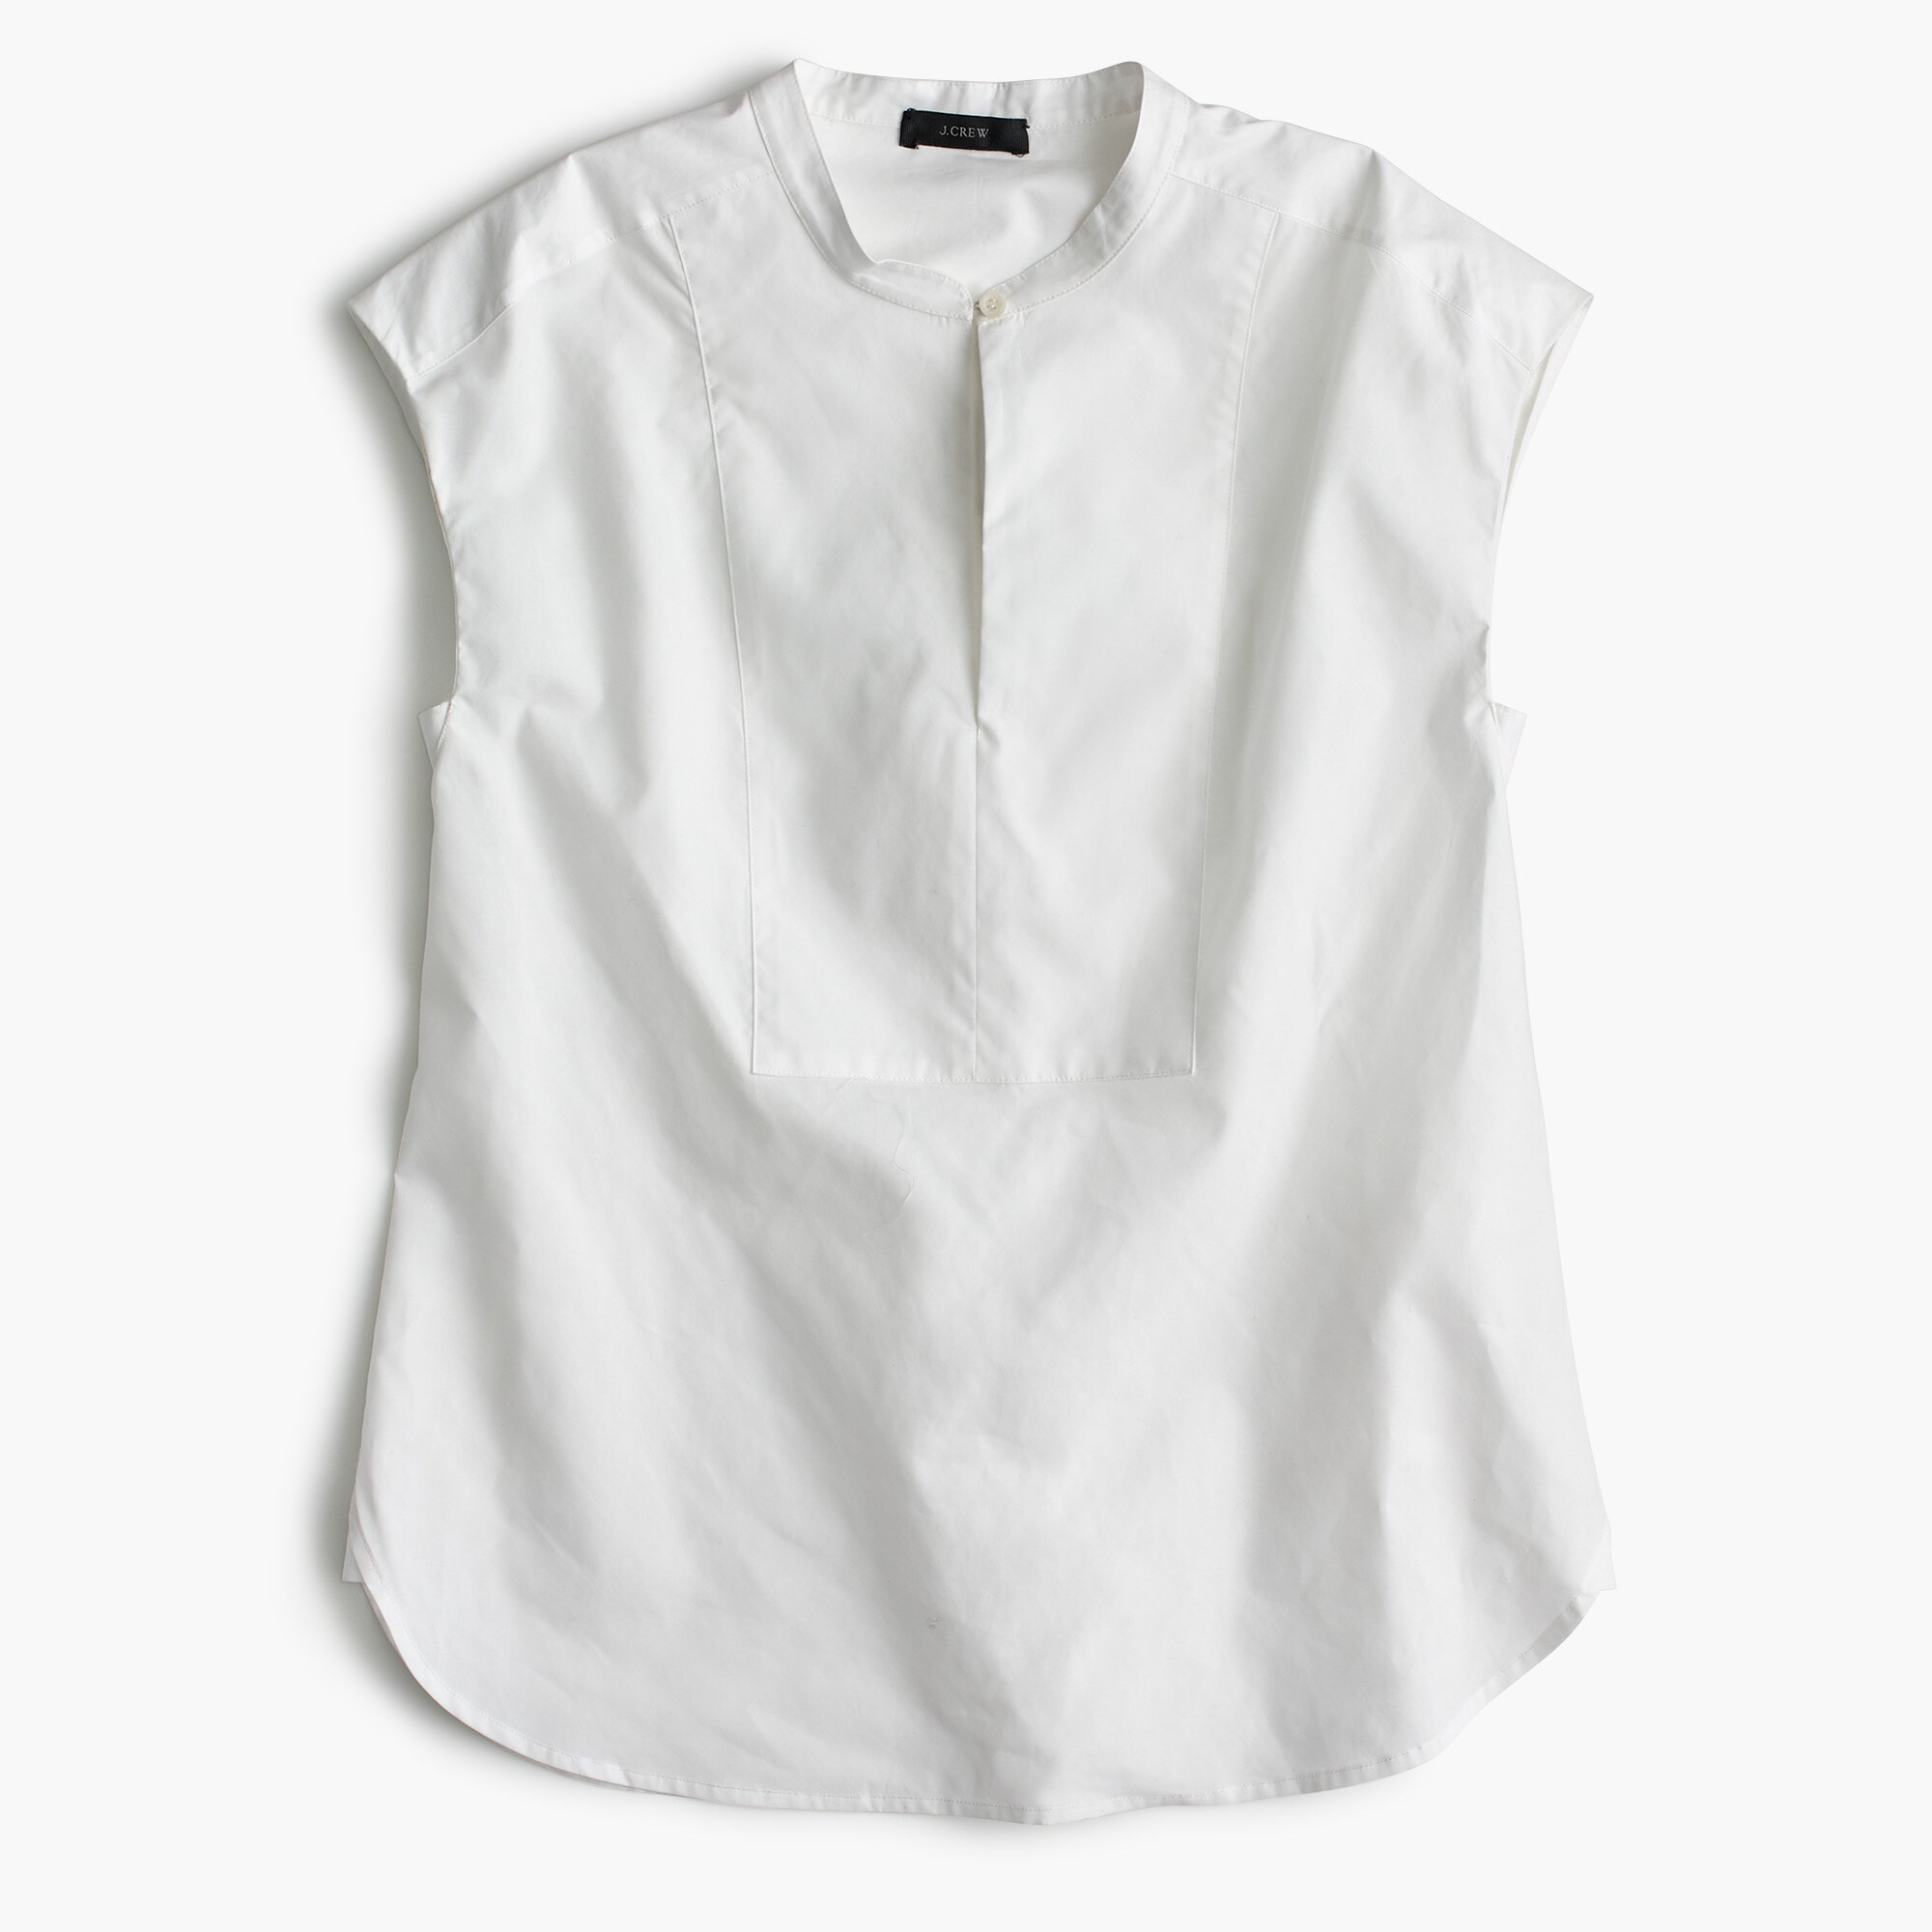 women's petite cap-sleeve top in cotton poplin - women's shirts